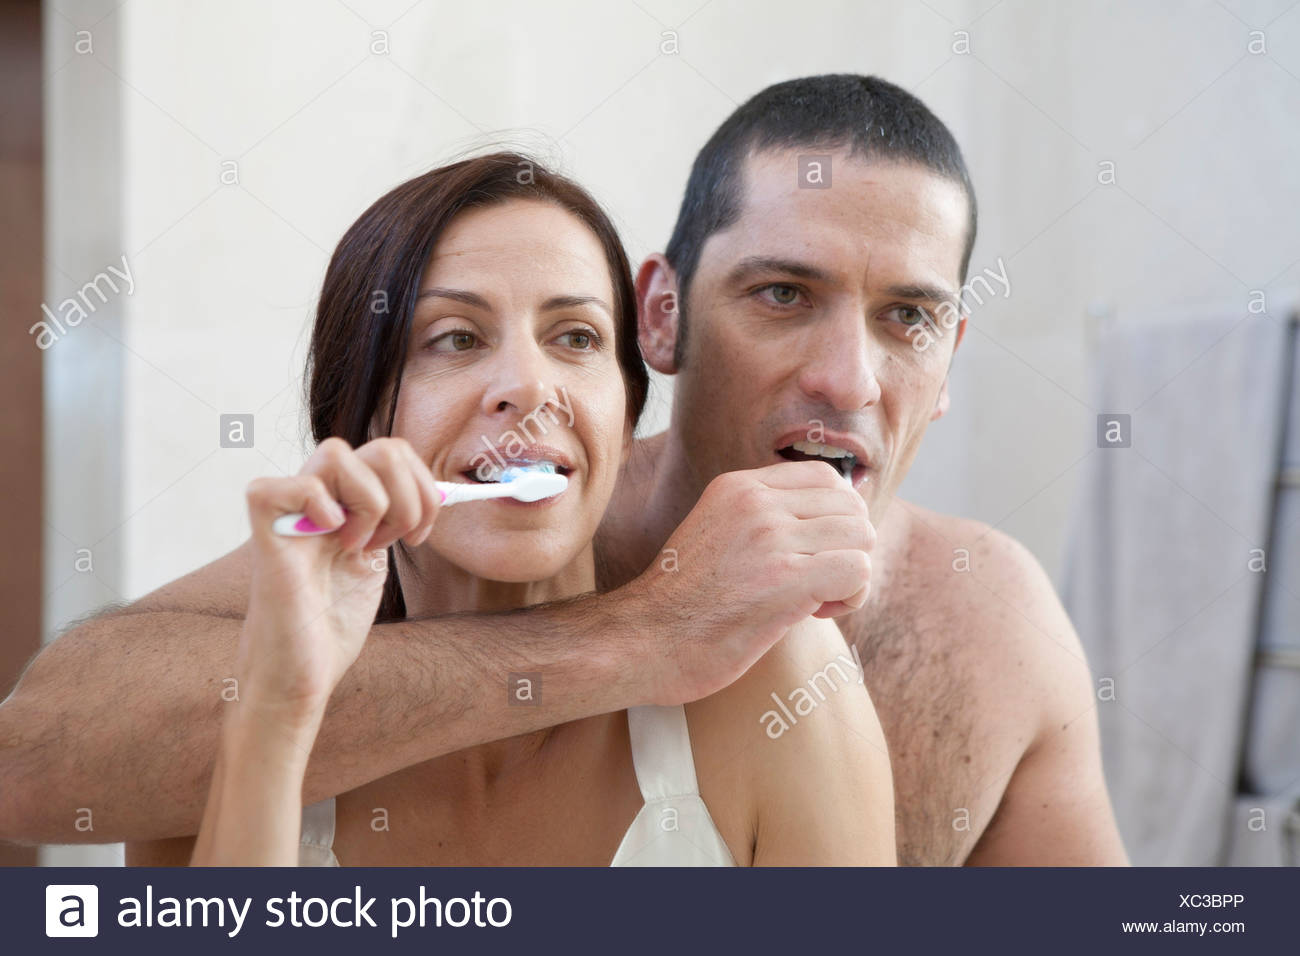 Couple brushing their teeth in bathroom - Stock Image